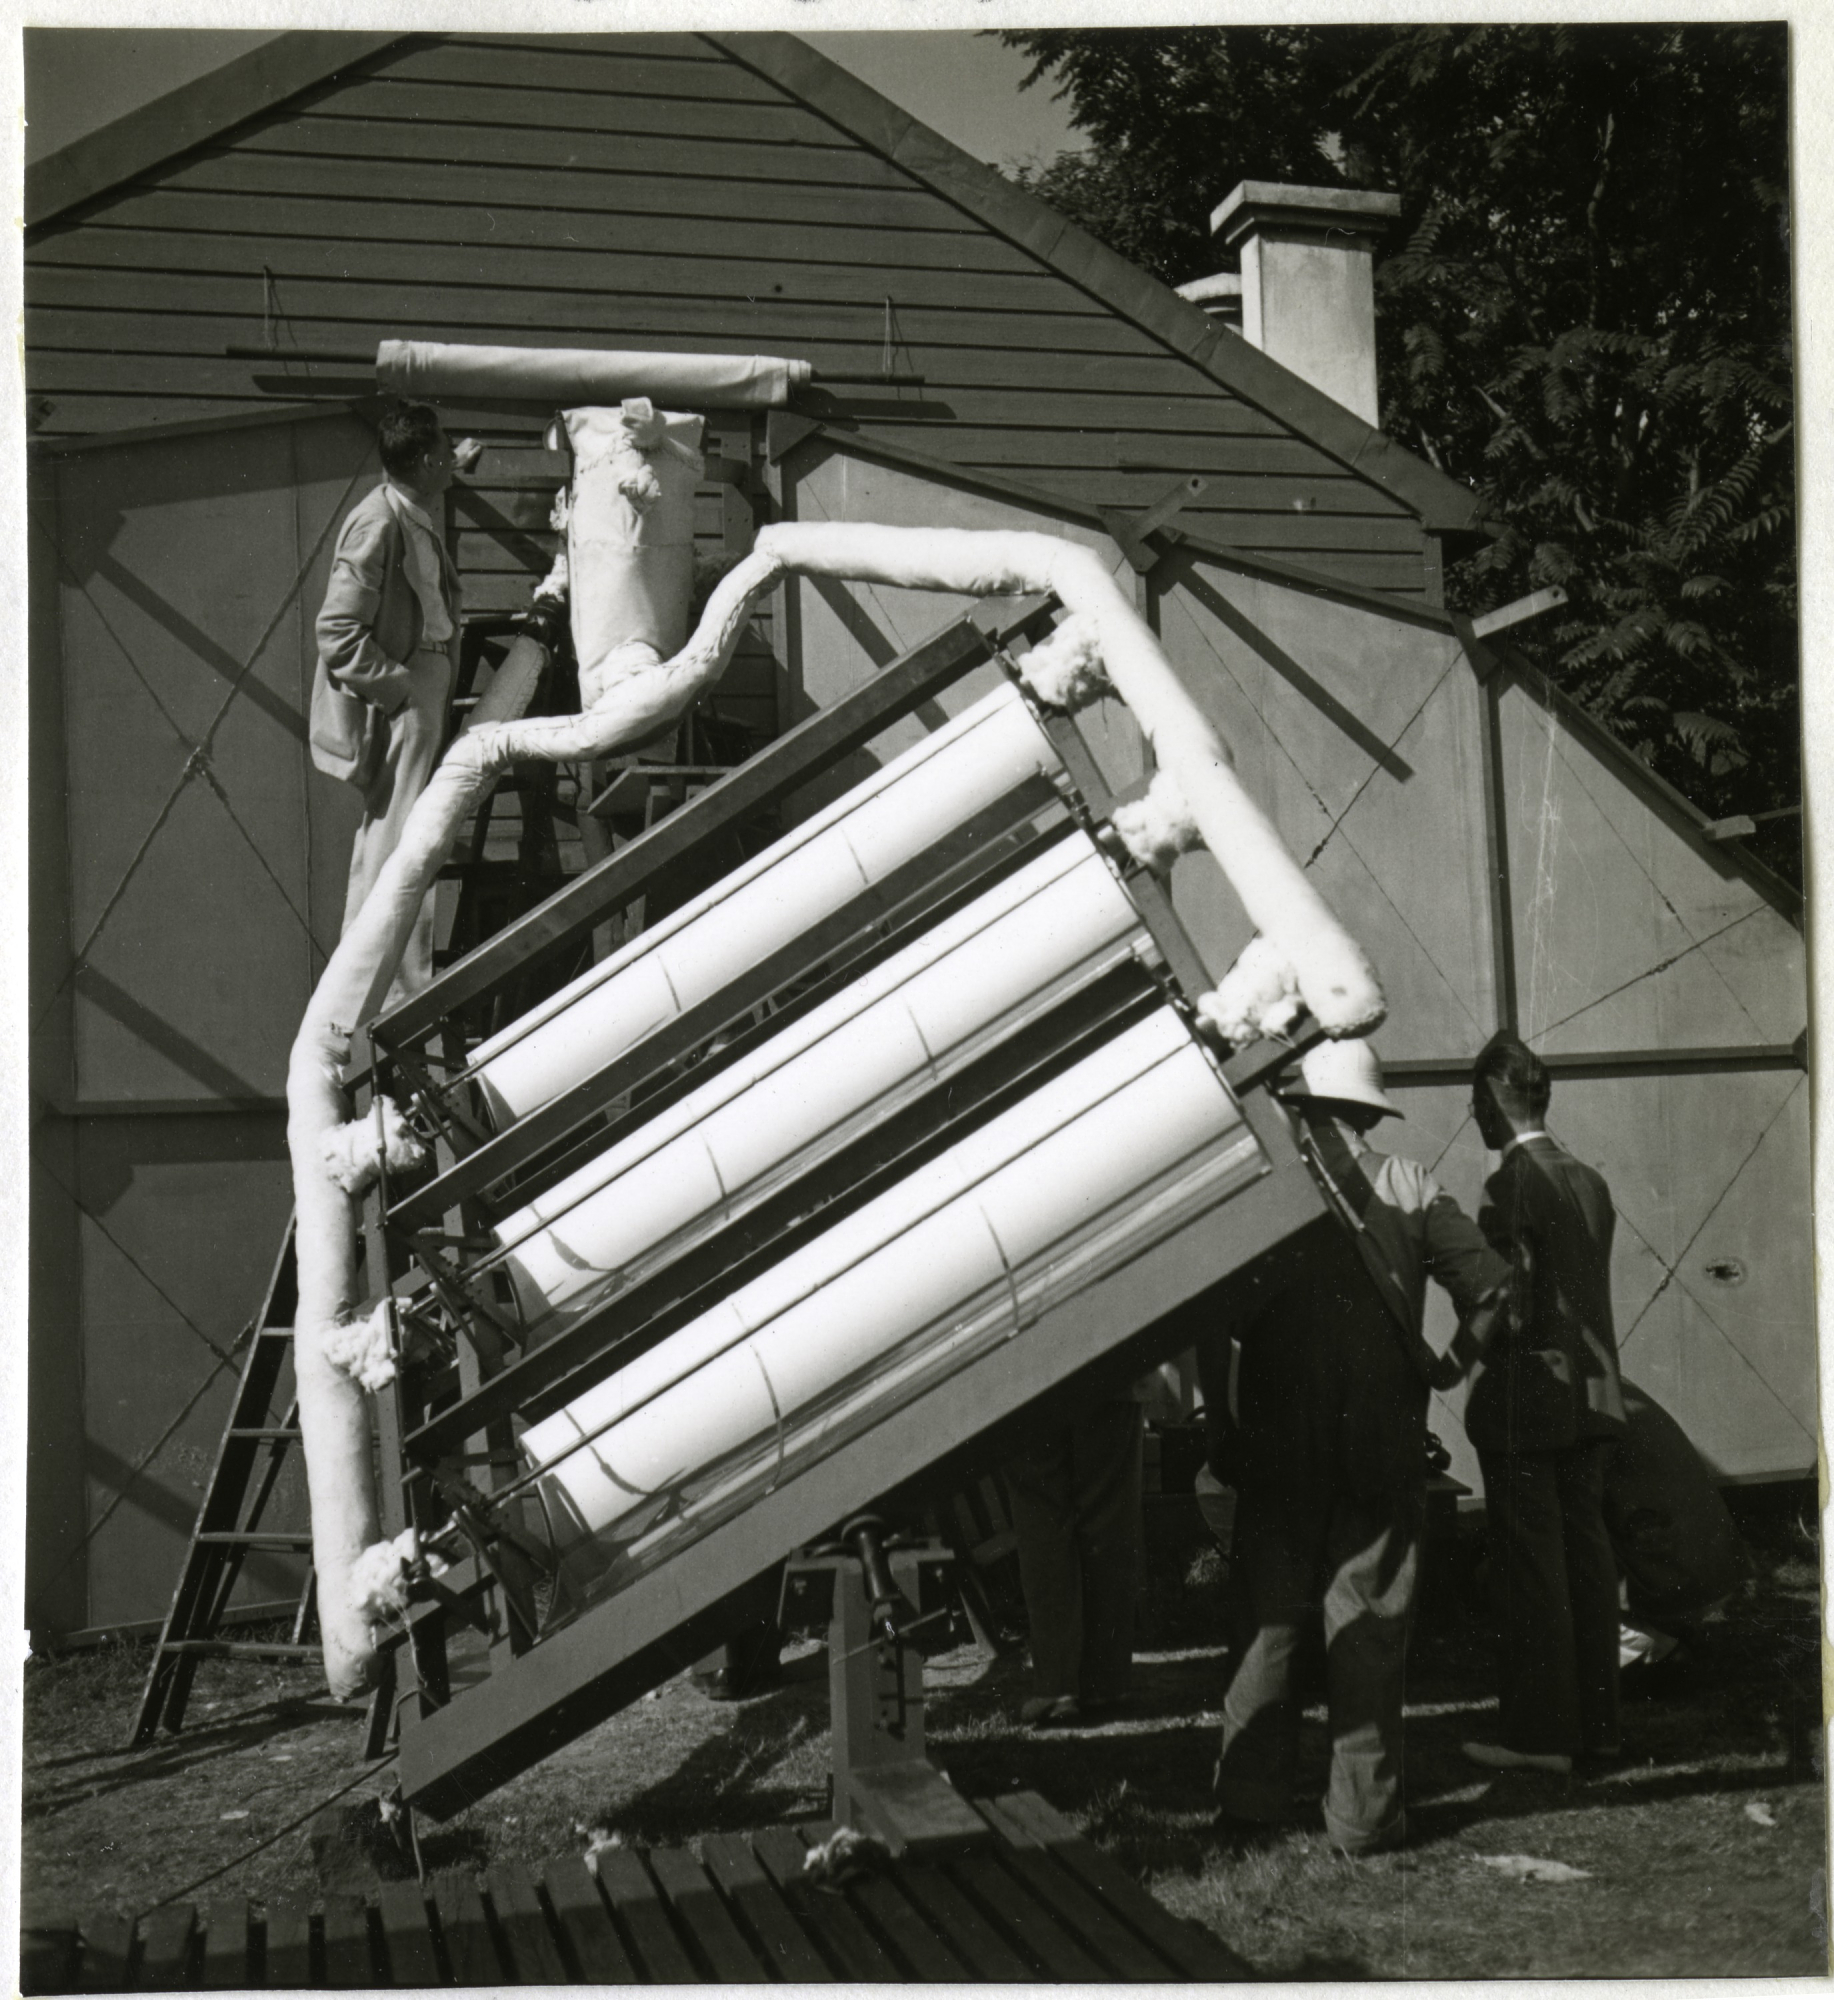 Charles G. Abbot's solar panels being prepared for the NBC broadcast, 1936.